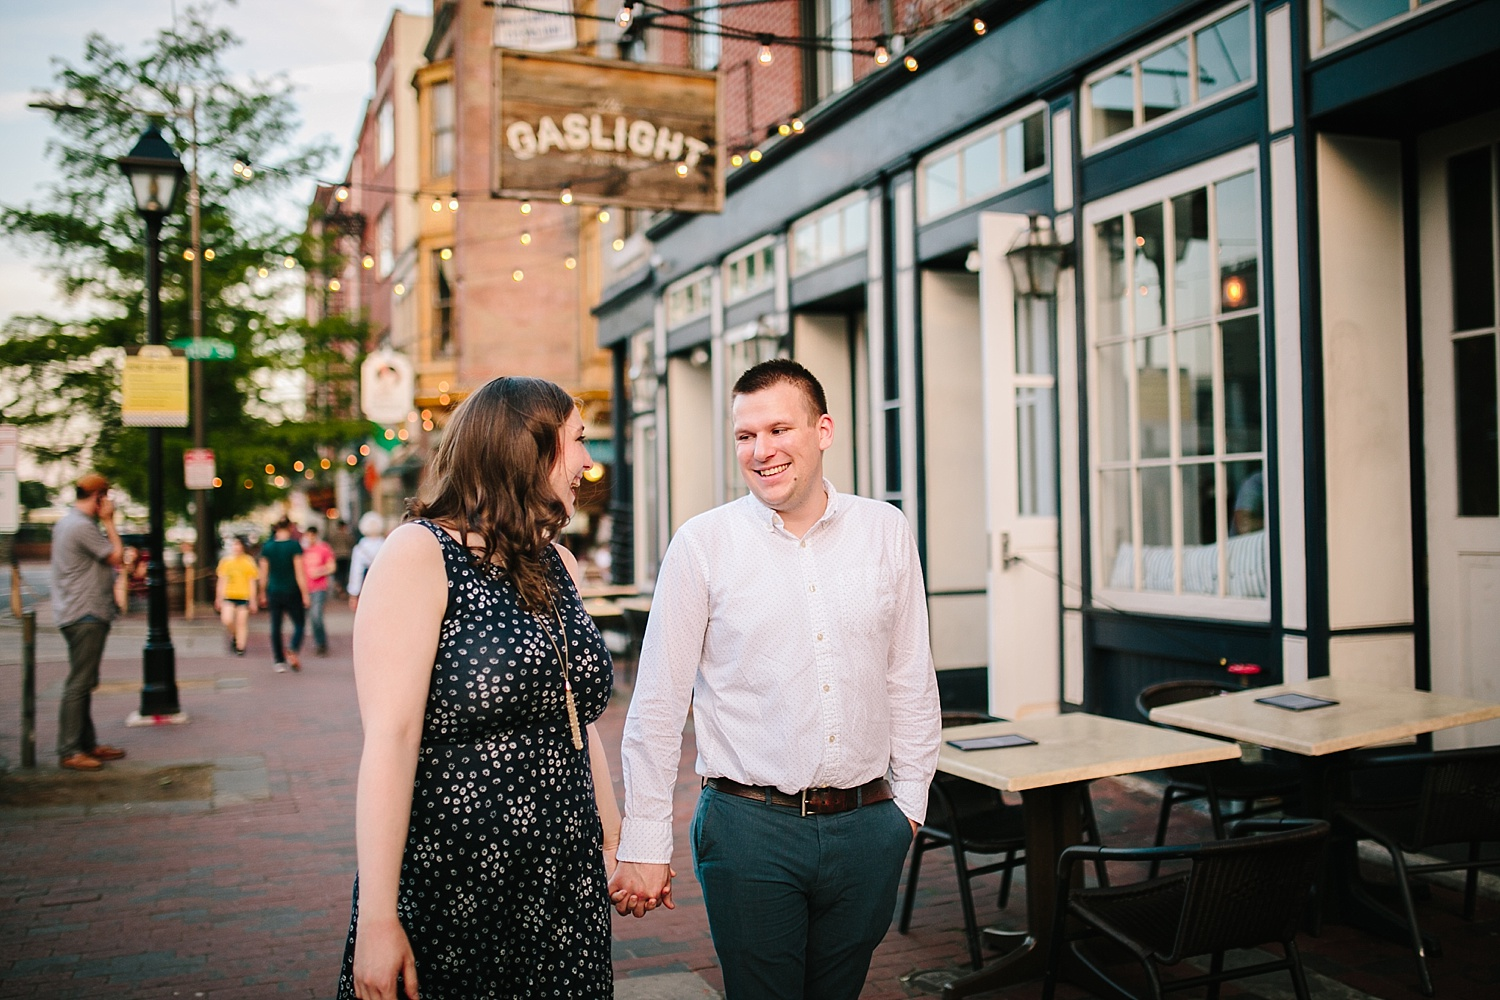 lizandbrandon_oldcity_philadelphia_elfrethsalley_engagement_session_image028.jpg